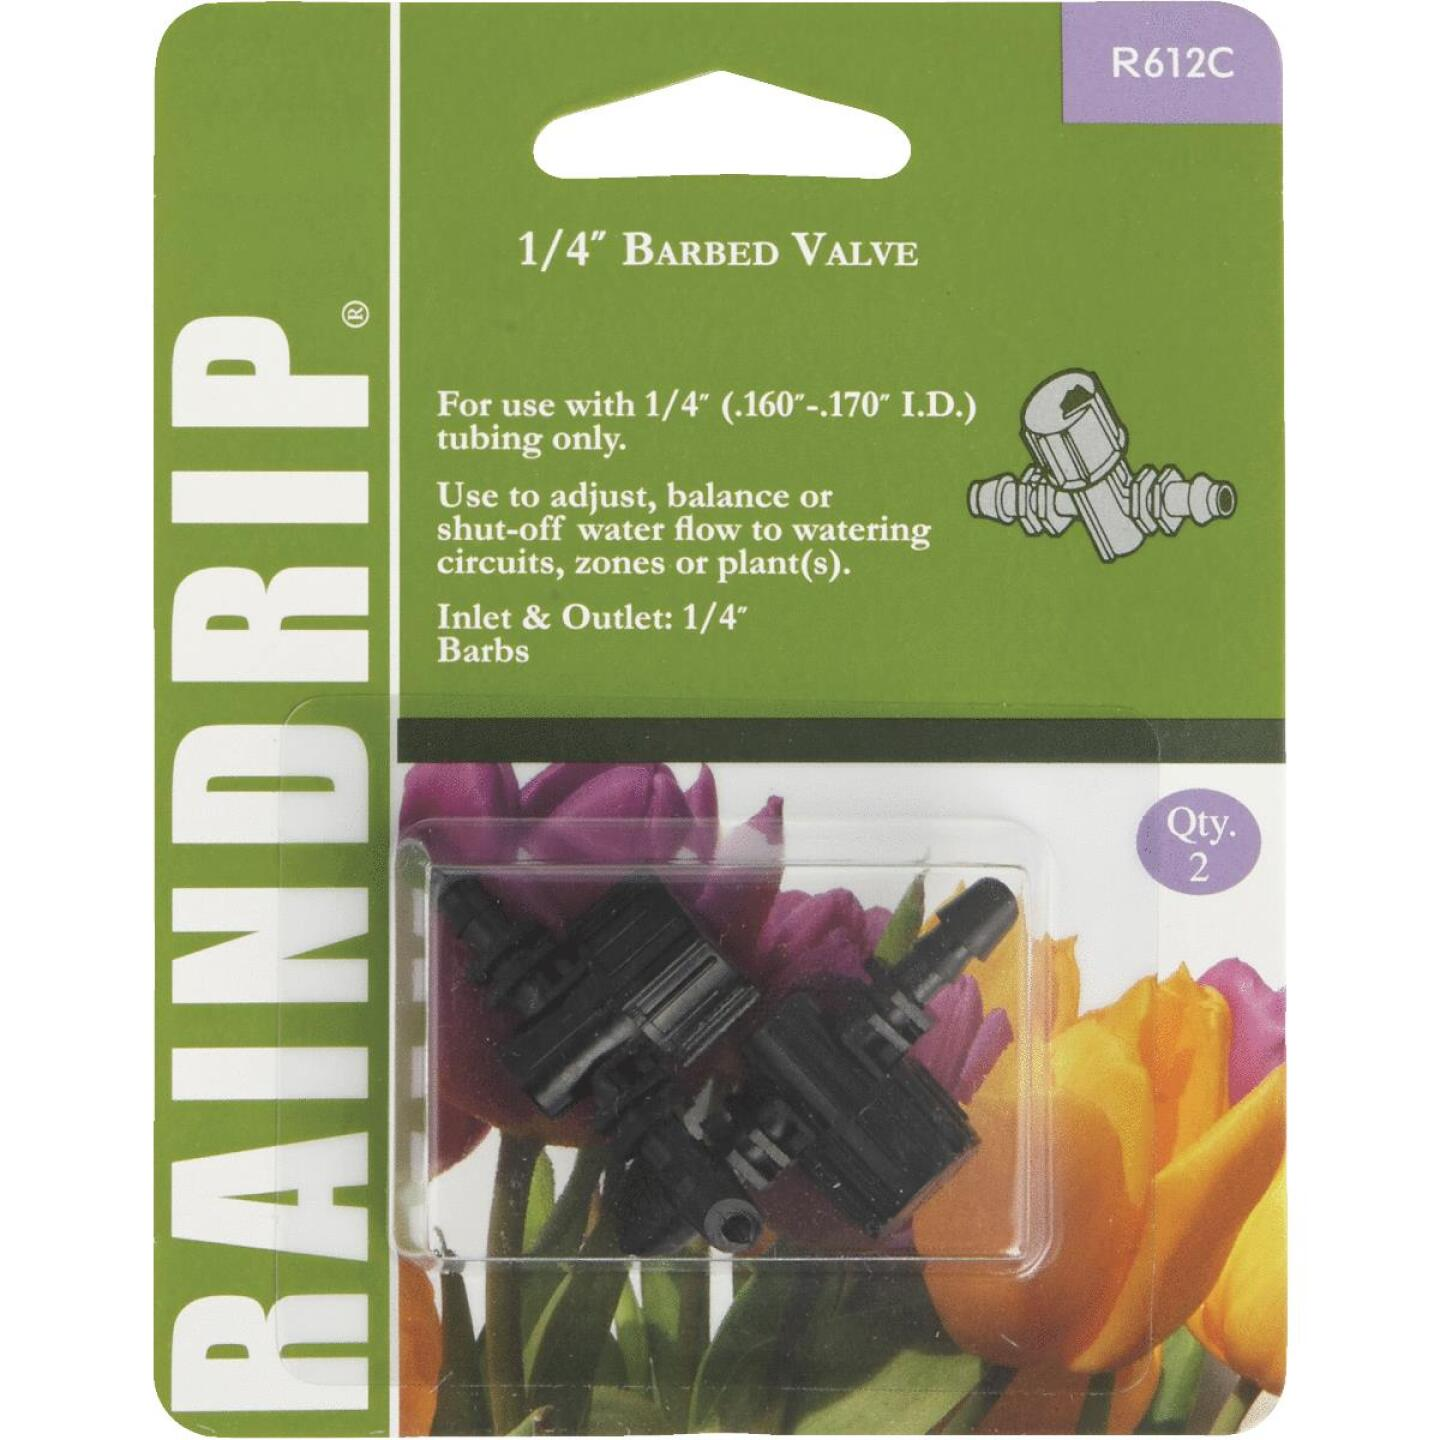 Raindrip 1/4 In. Double-Barbed In-Line Valve (2-Pack) Image 1